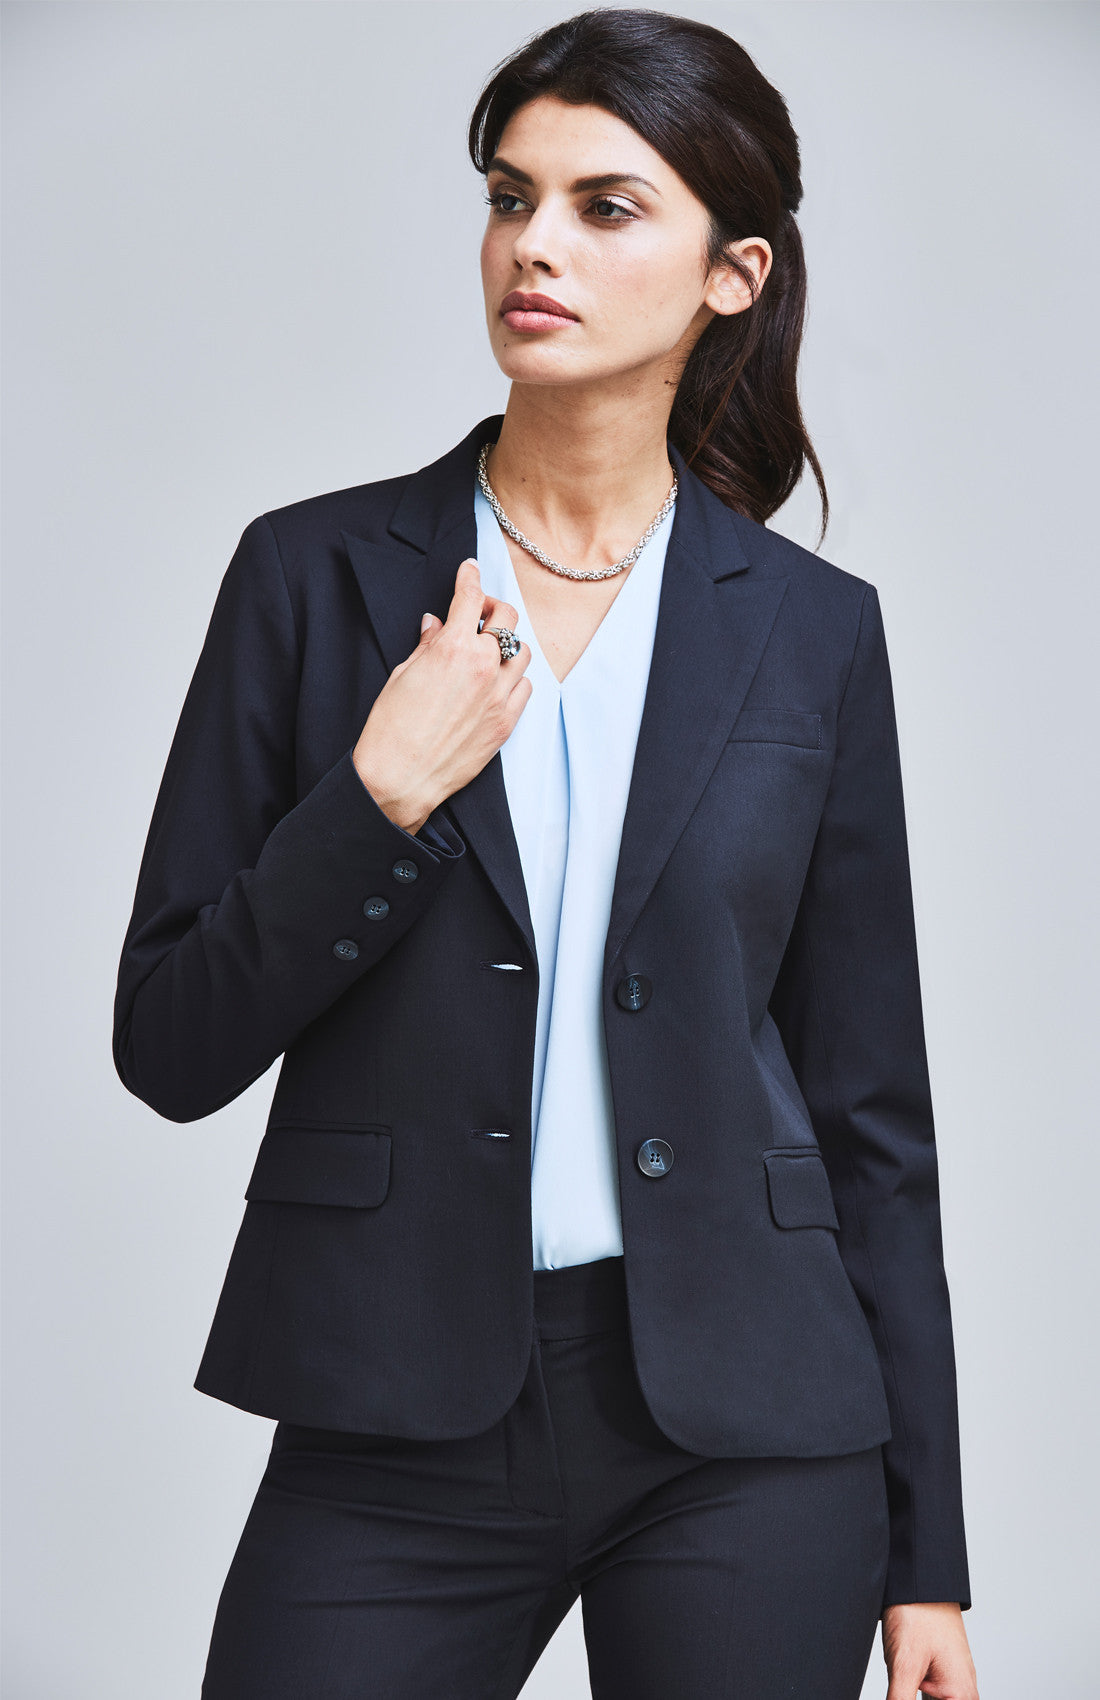 Feminine smart suit jacket for the office navy